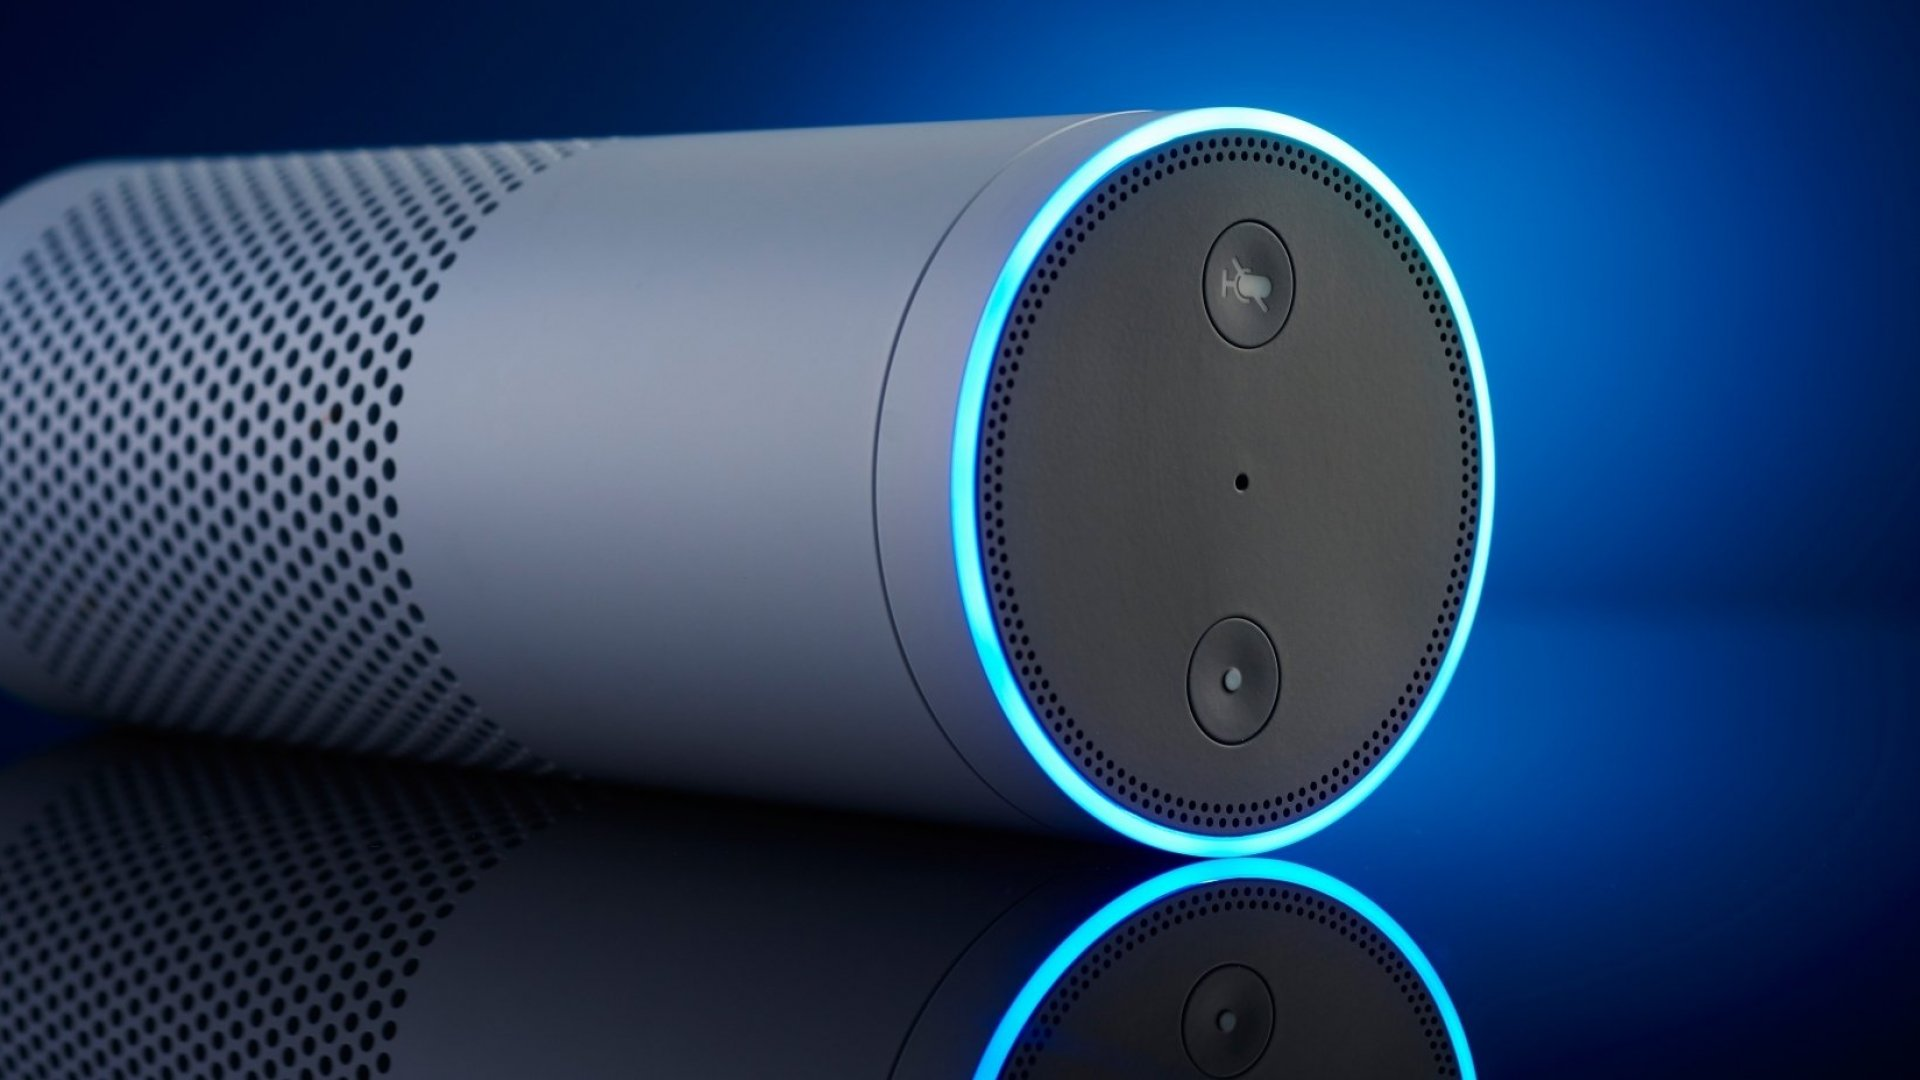 Amazon Alexa Tricks: One Developer Is Having Way Too Much Fun With His Devices